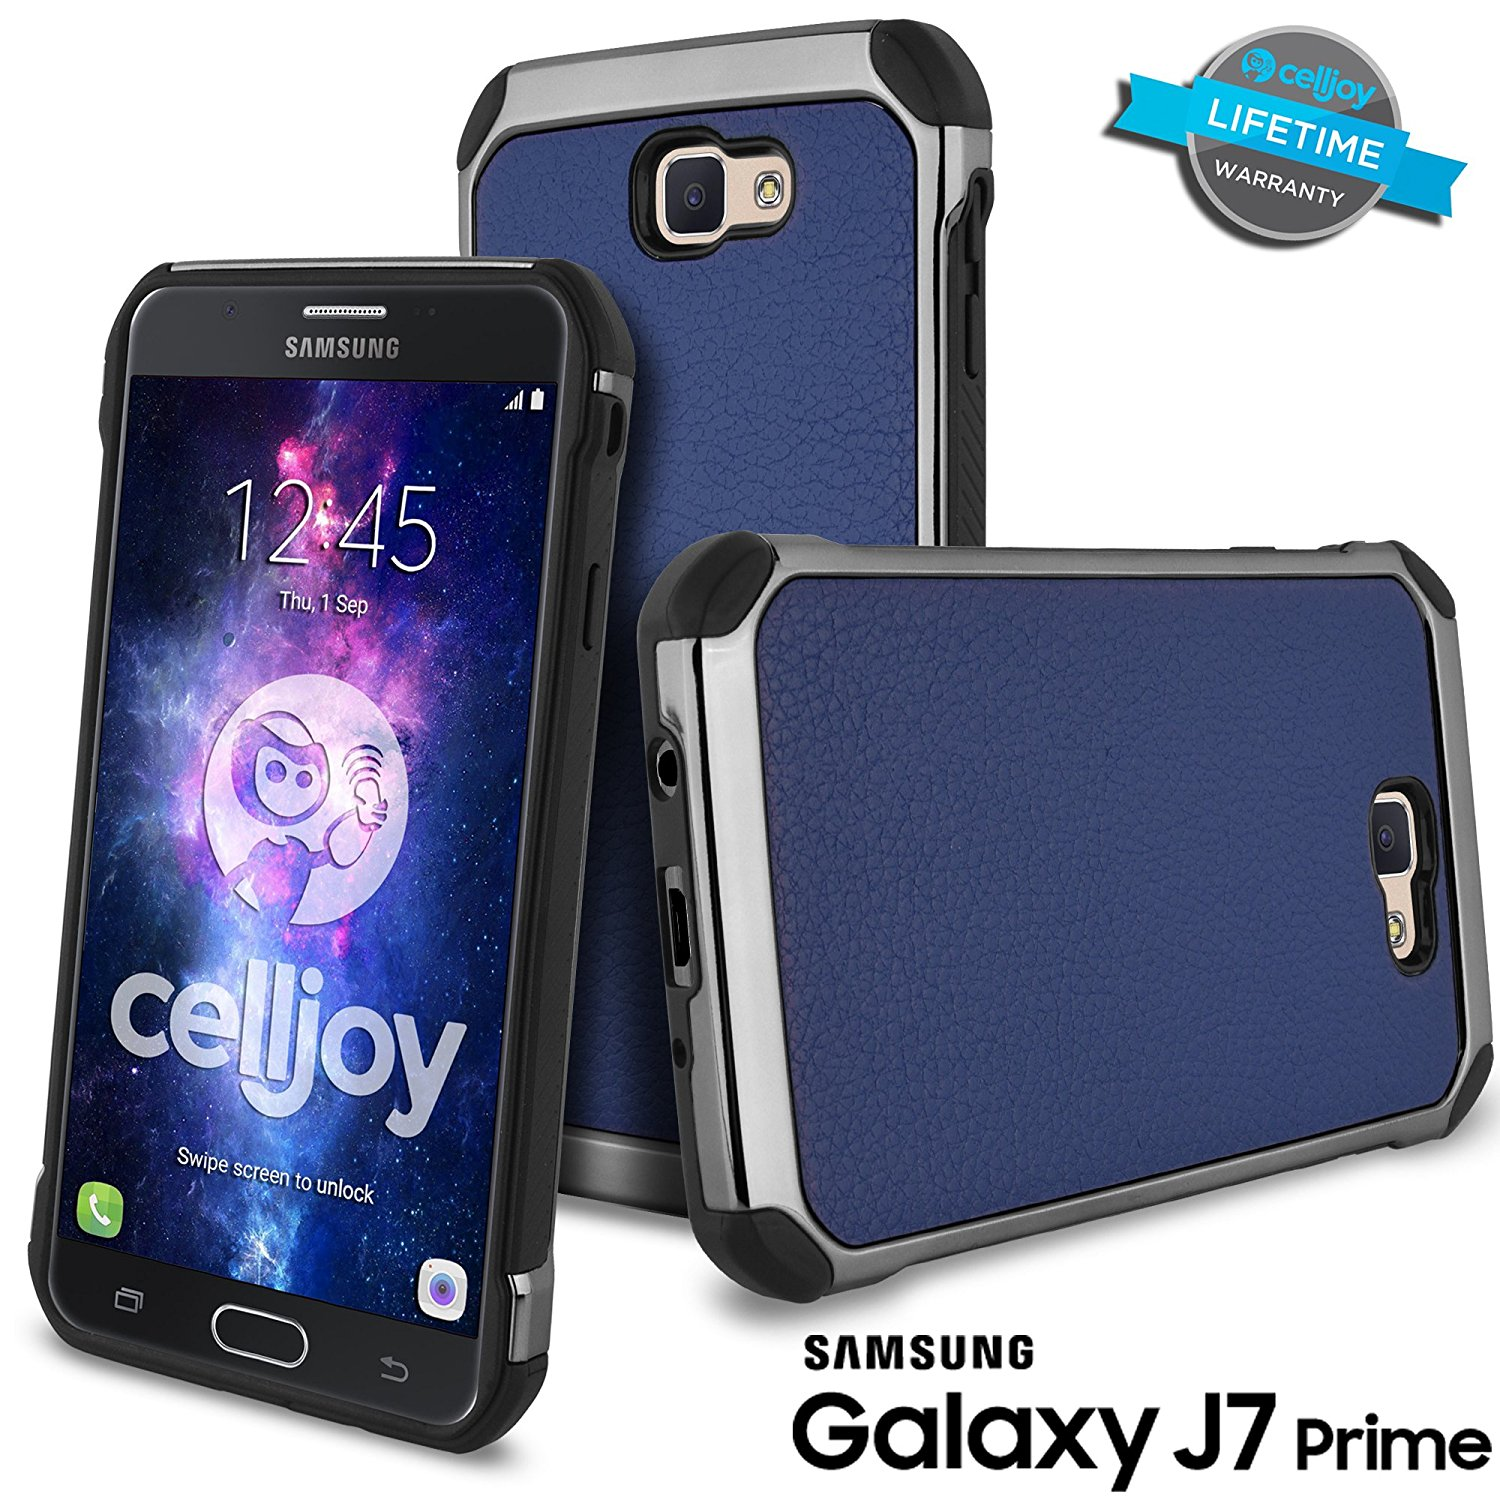 Galaxy J7 Prime Case, Galaxy On7 Case, Celljoy [Deluxe Shock Armor] Slim Fit Dual Layer Protective ((Shockproof)) Hybrid [[Impact Resistant]] Bumper Premium Elegant - Thin Hard Cover (Blue)